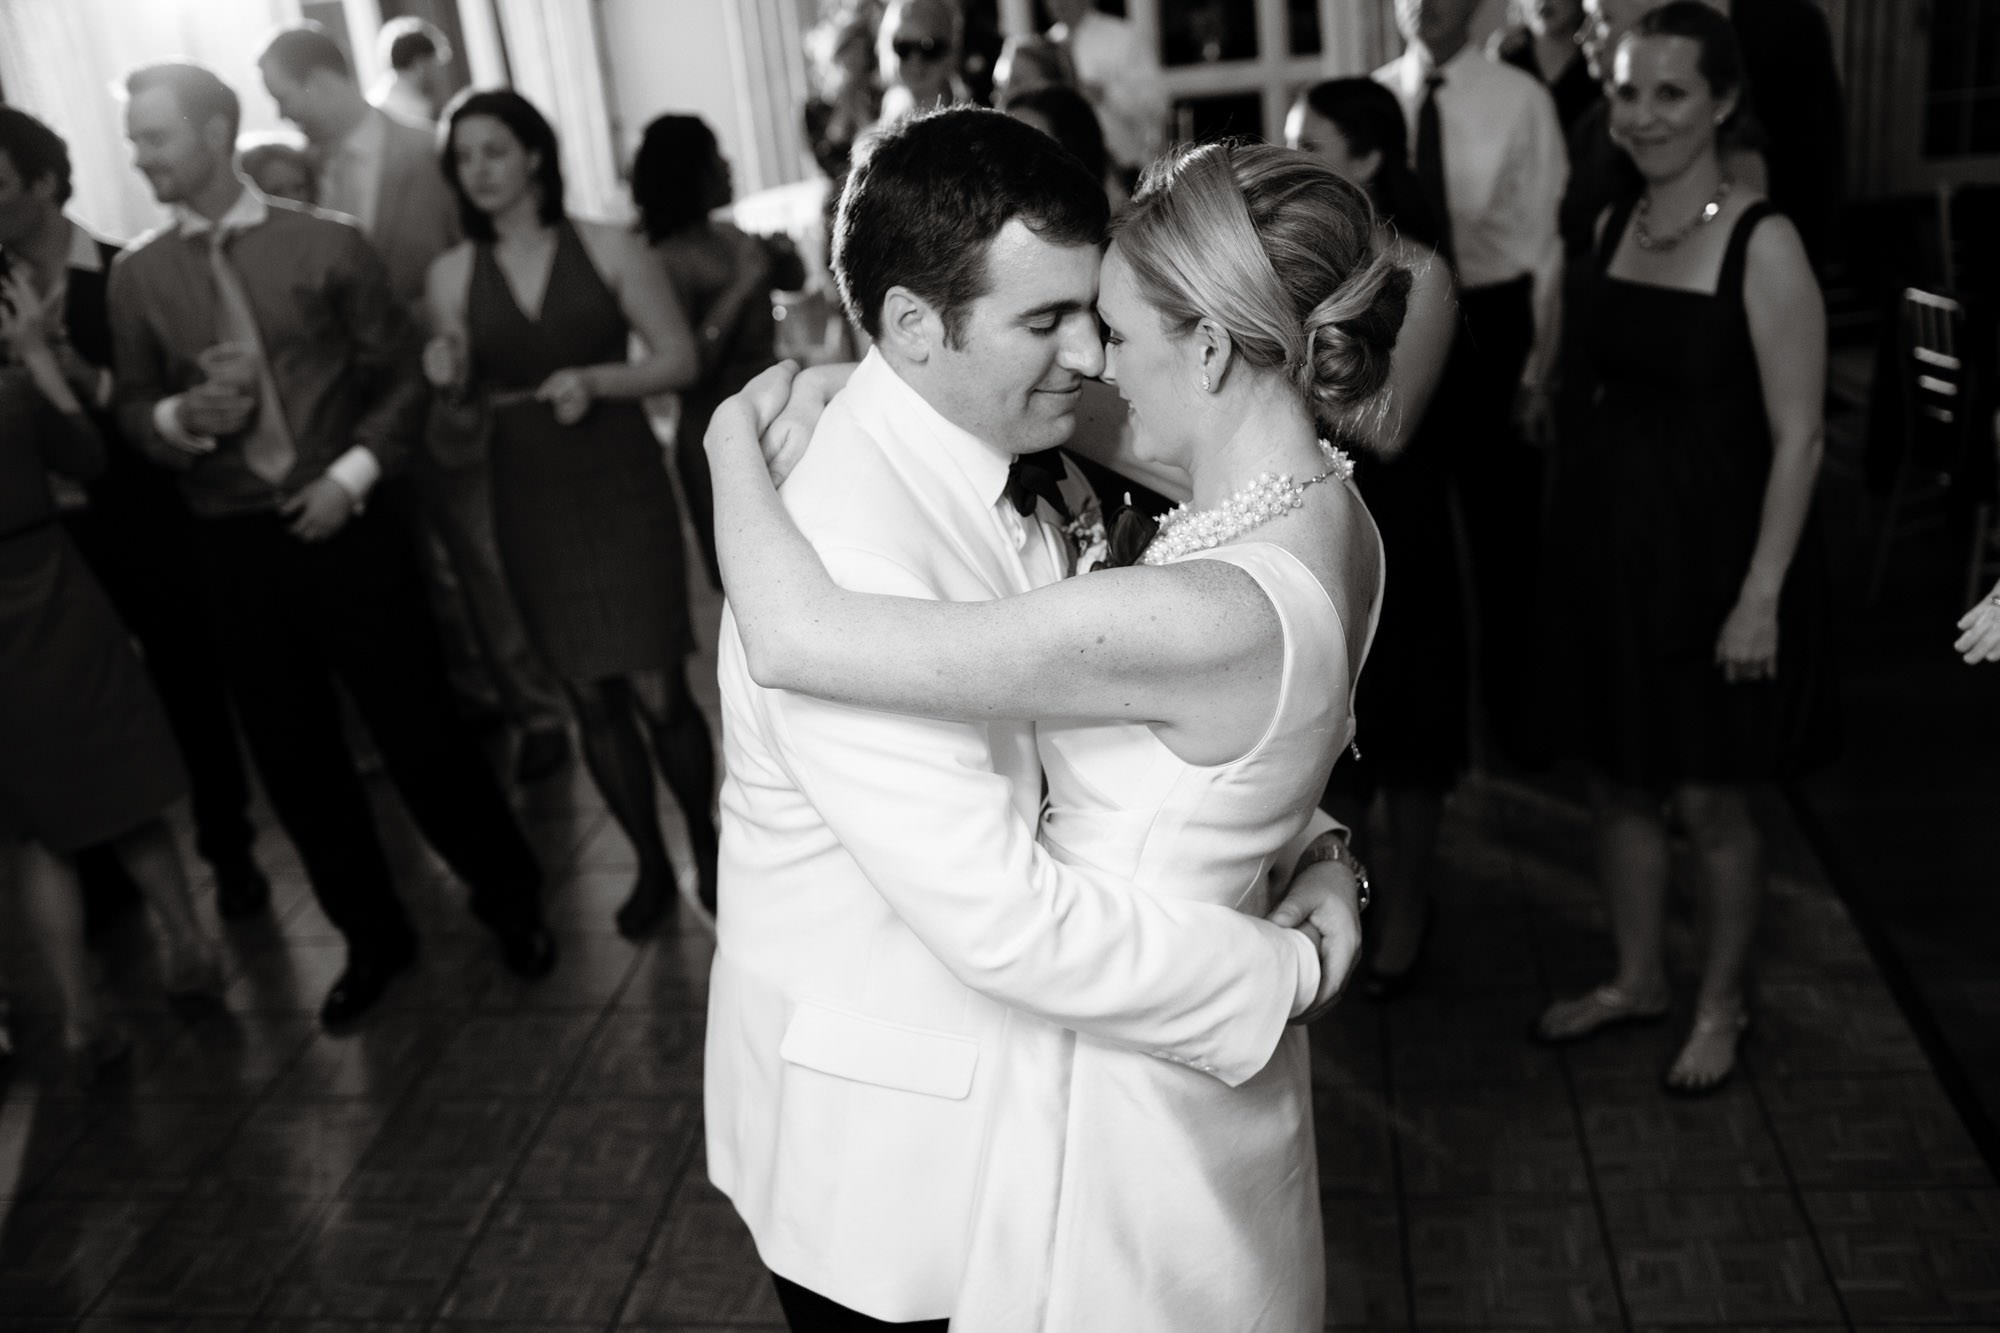 The couple dances during the reception at their Oaks Waterfront Inn and Events Wedding.